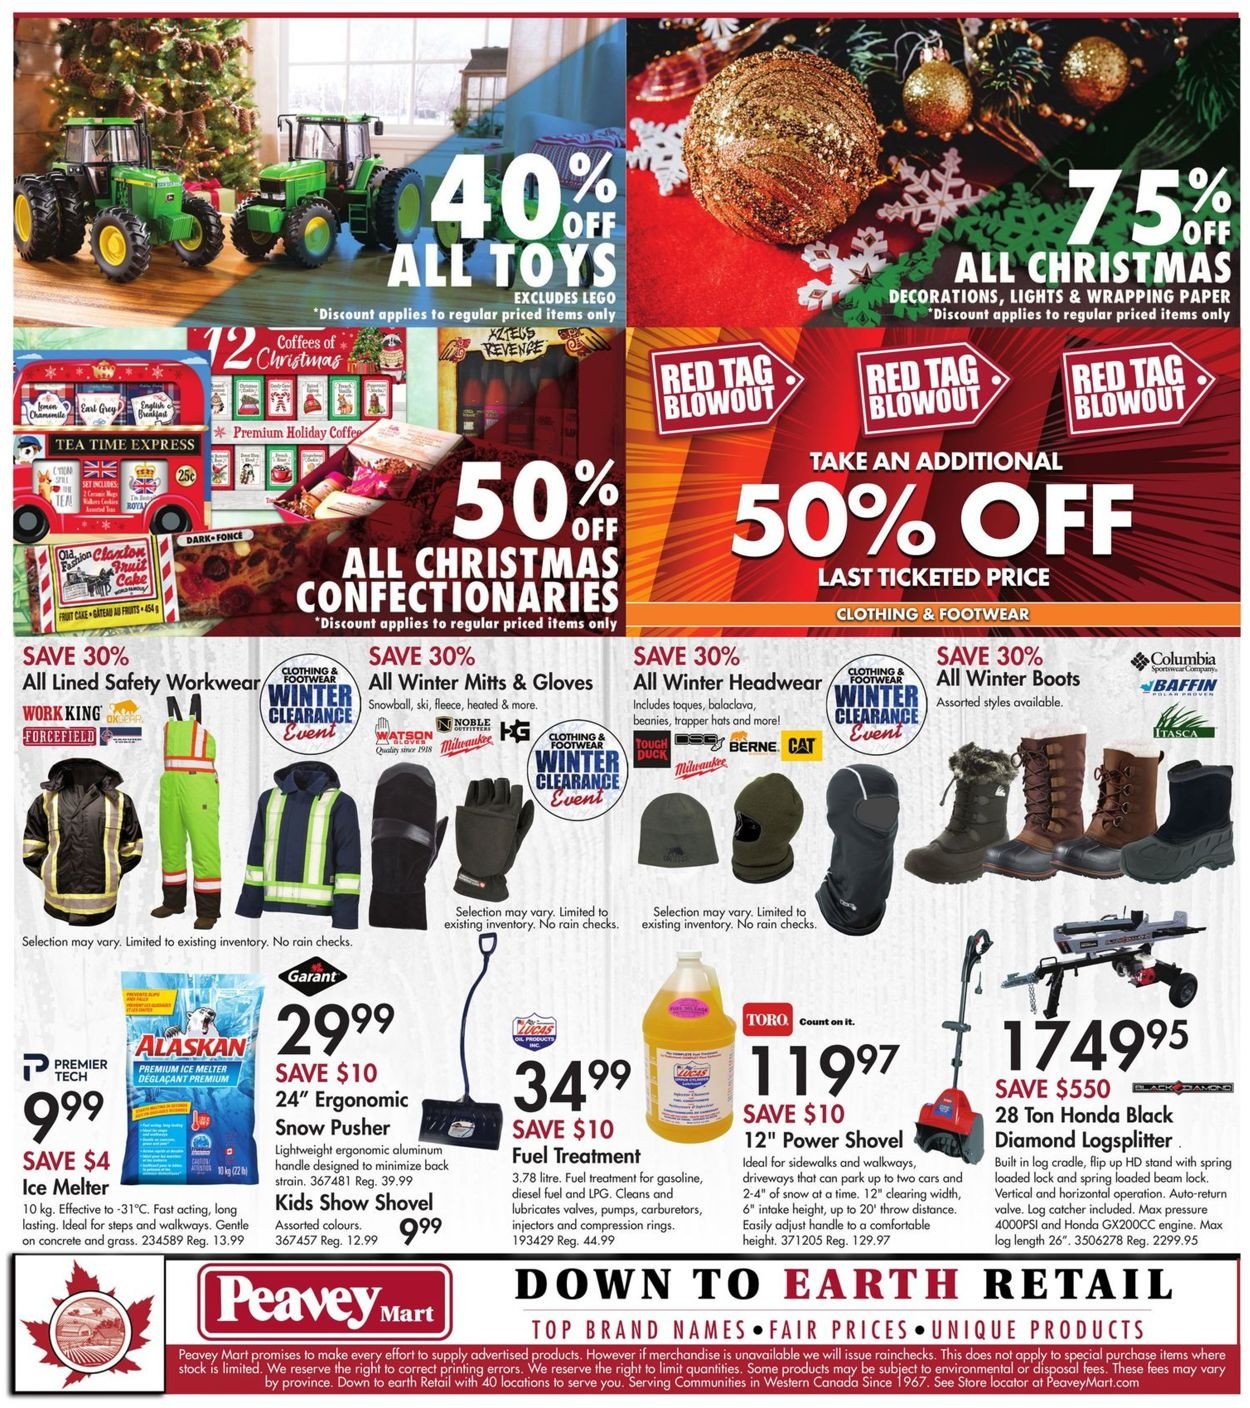 Peavey Mart - New Year 2021 Flyer - 12/31-01/07/2021 (Page 14)